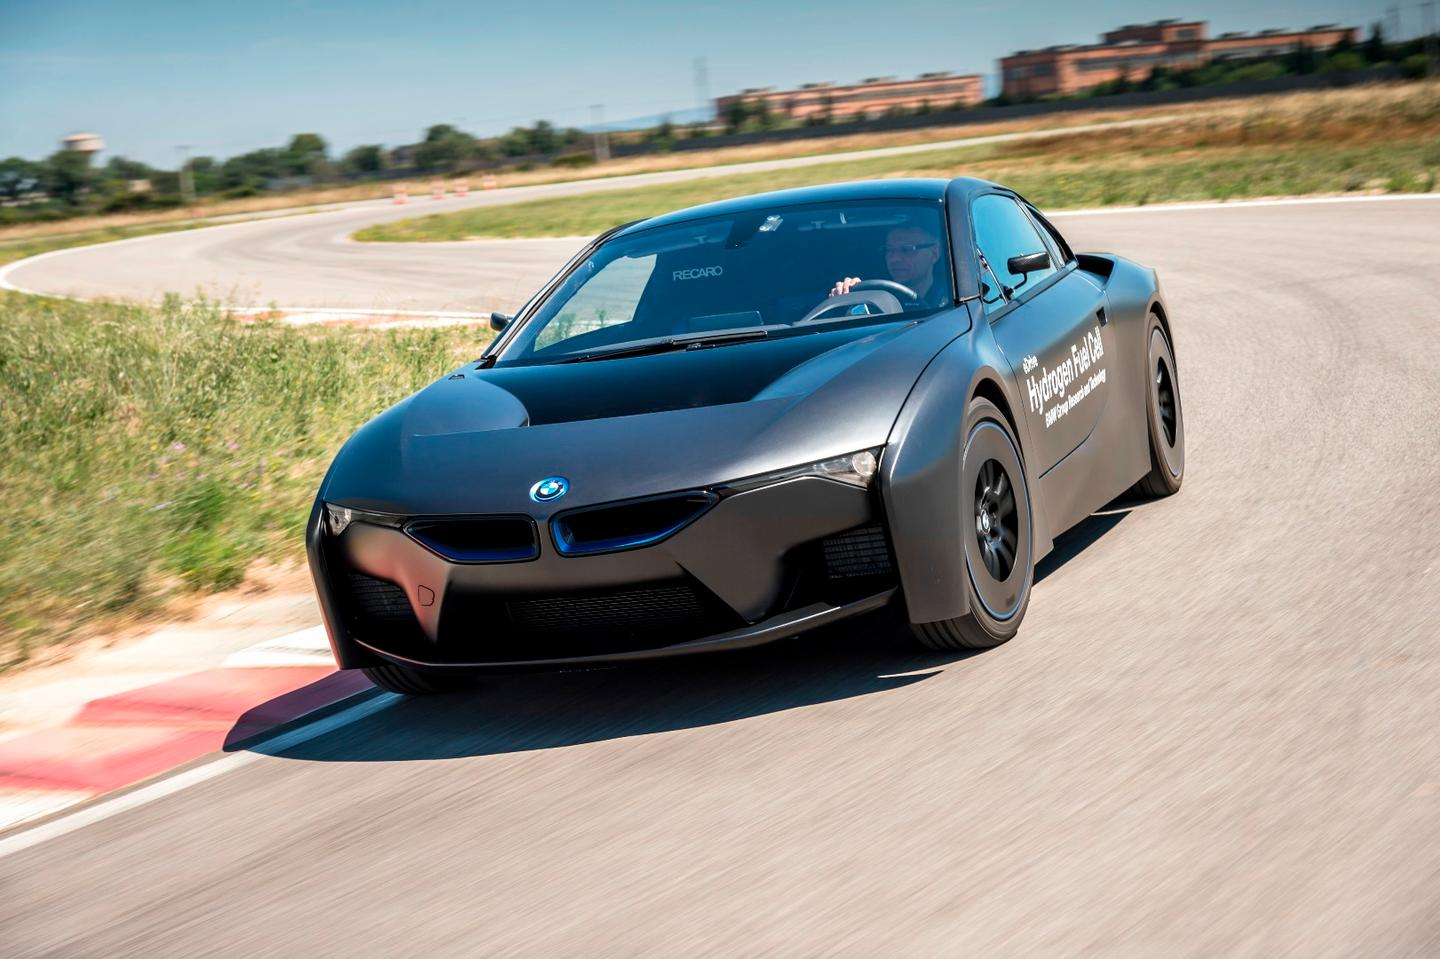 BMW showed off a slinky hydrogen concept based on the i8